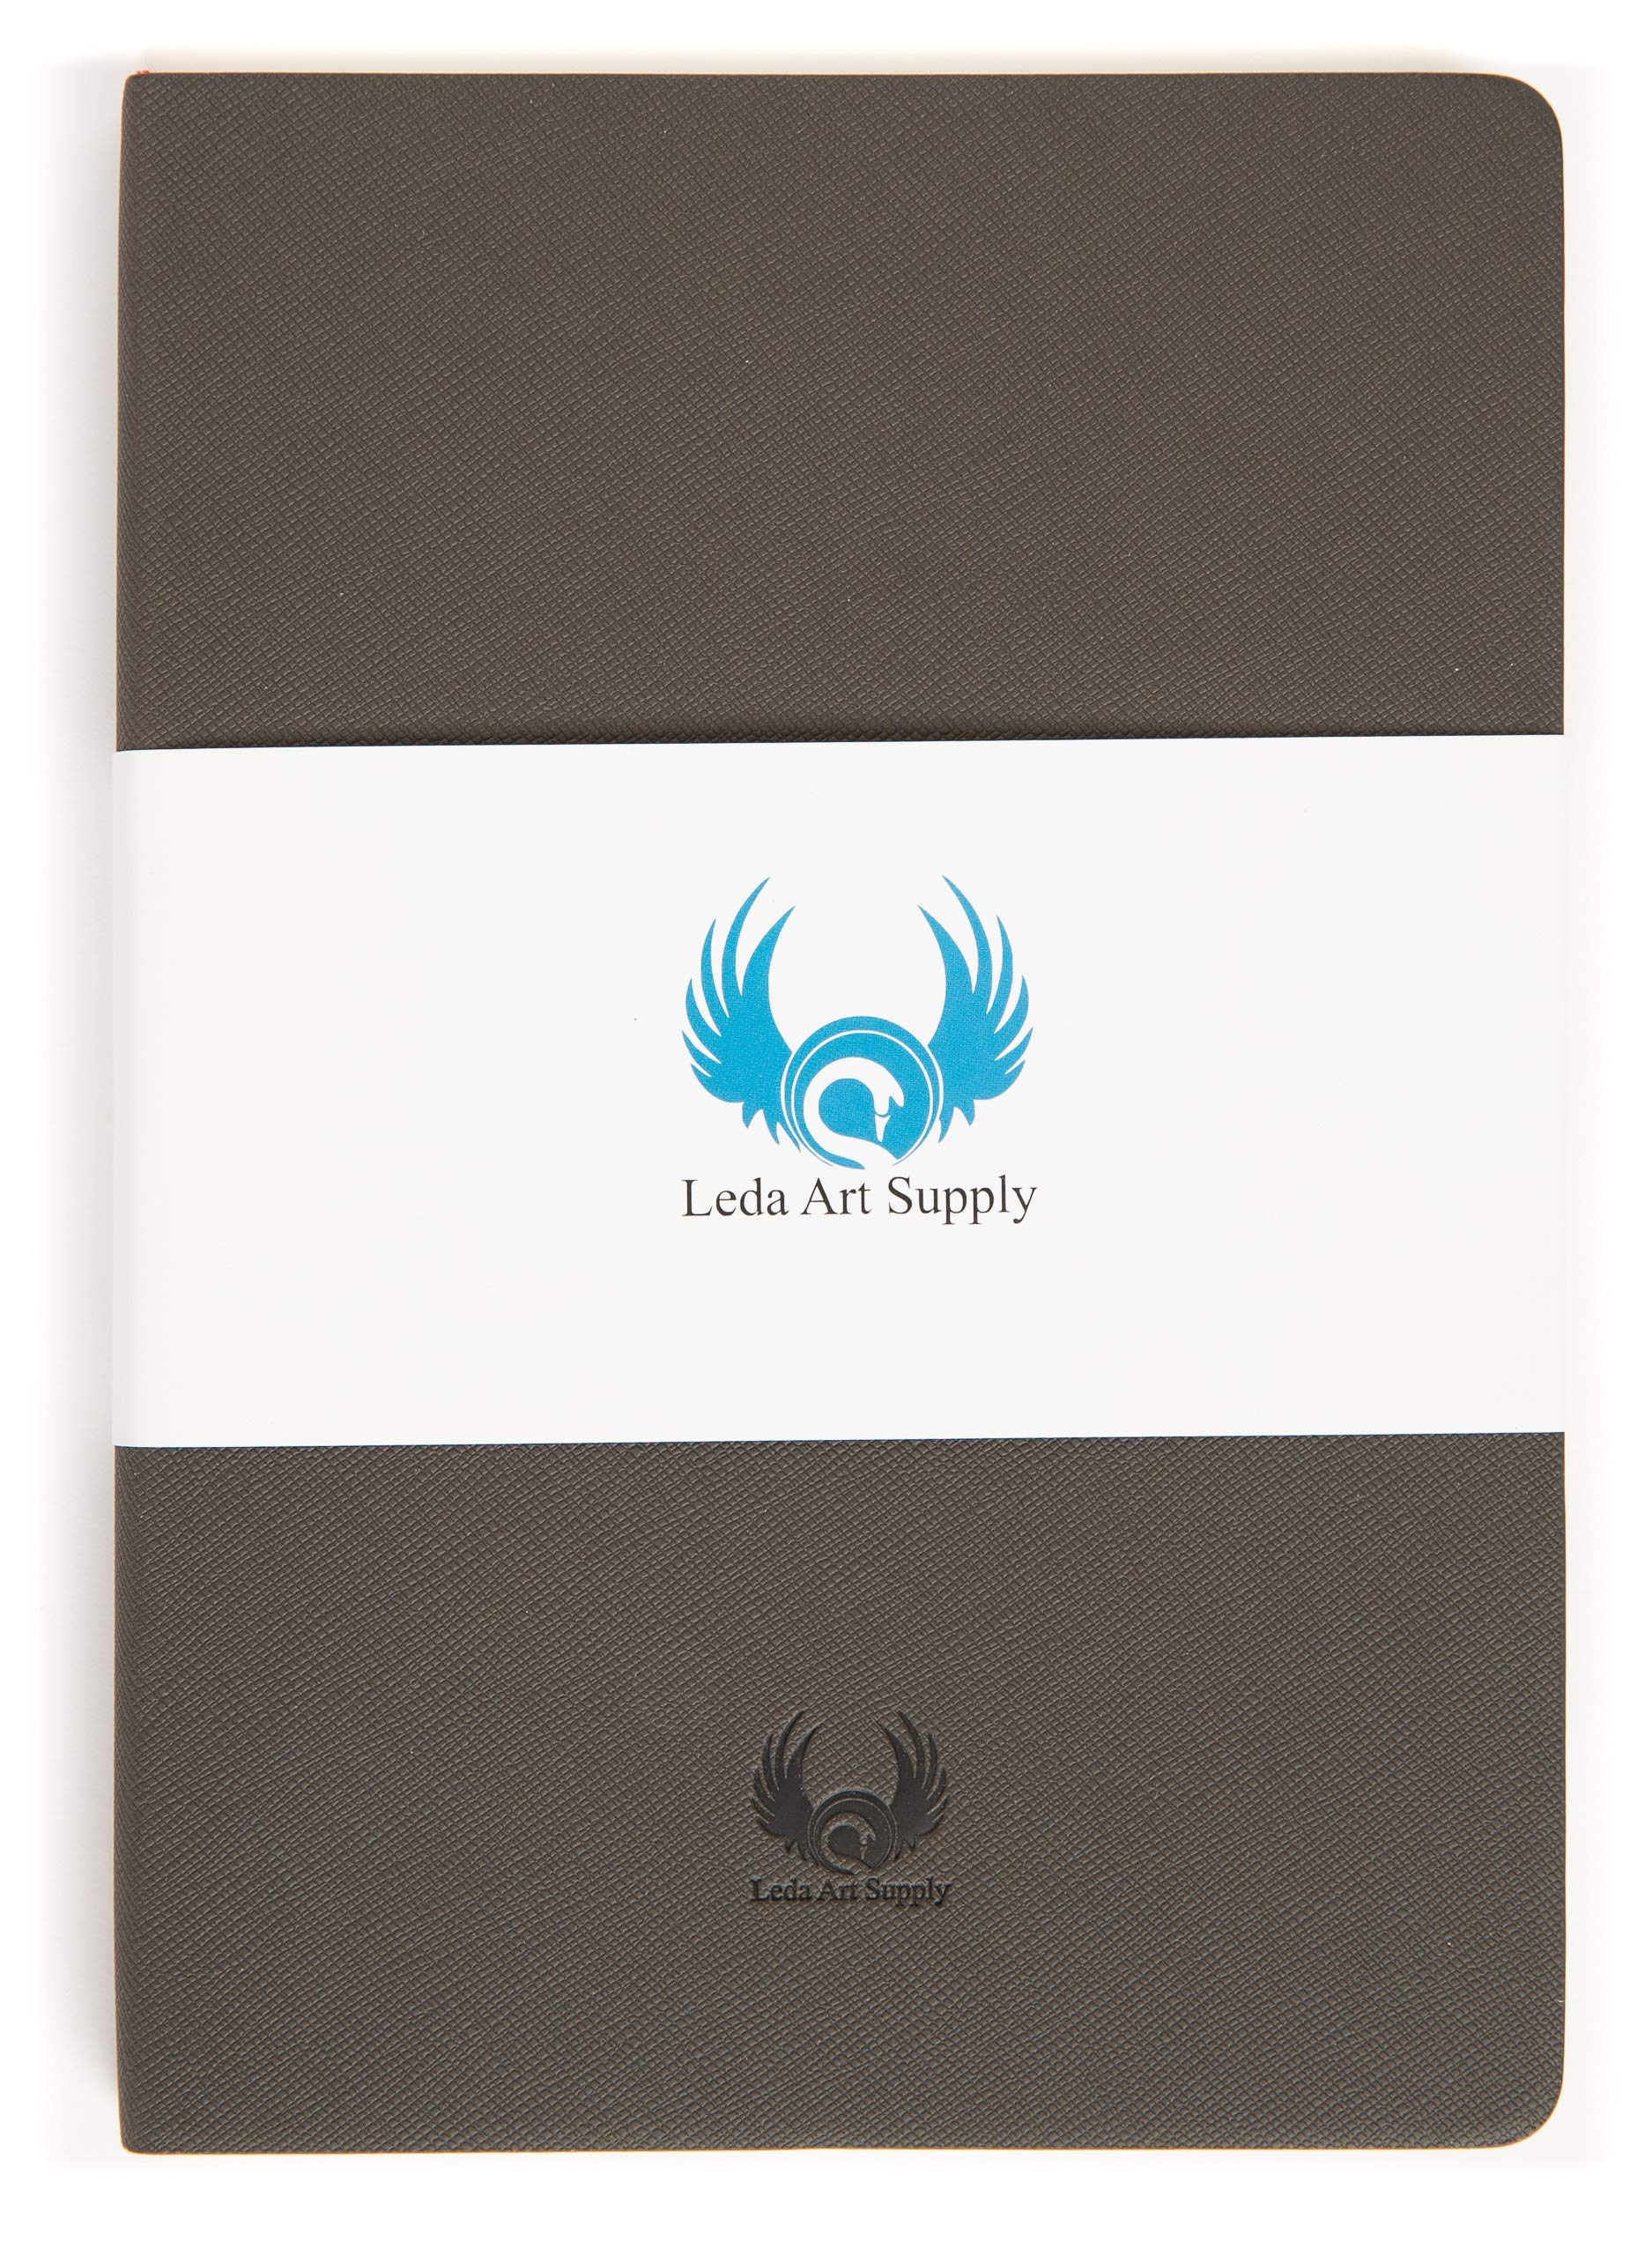 Leda Art Supply Perfect Premium A5 Sketch Book (Medium 8.25 x 5.7 inch) 160 Tear Resistant Pages for Professional Ink, Pen, Graphite and Colored Pencil Drawing